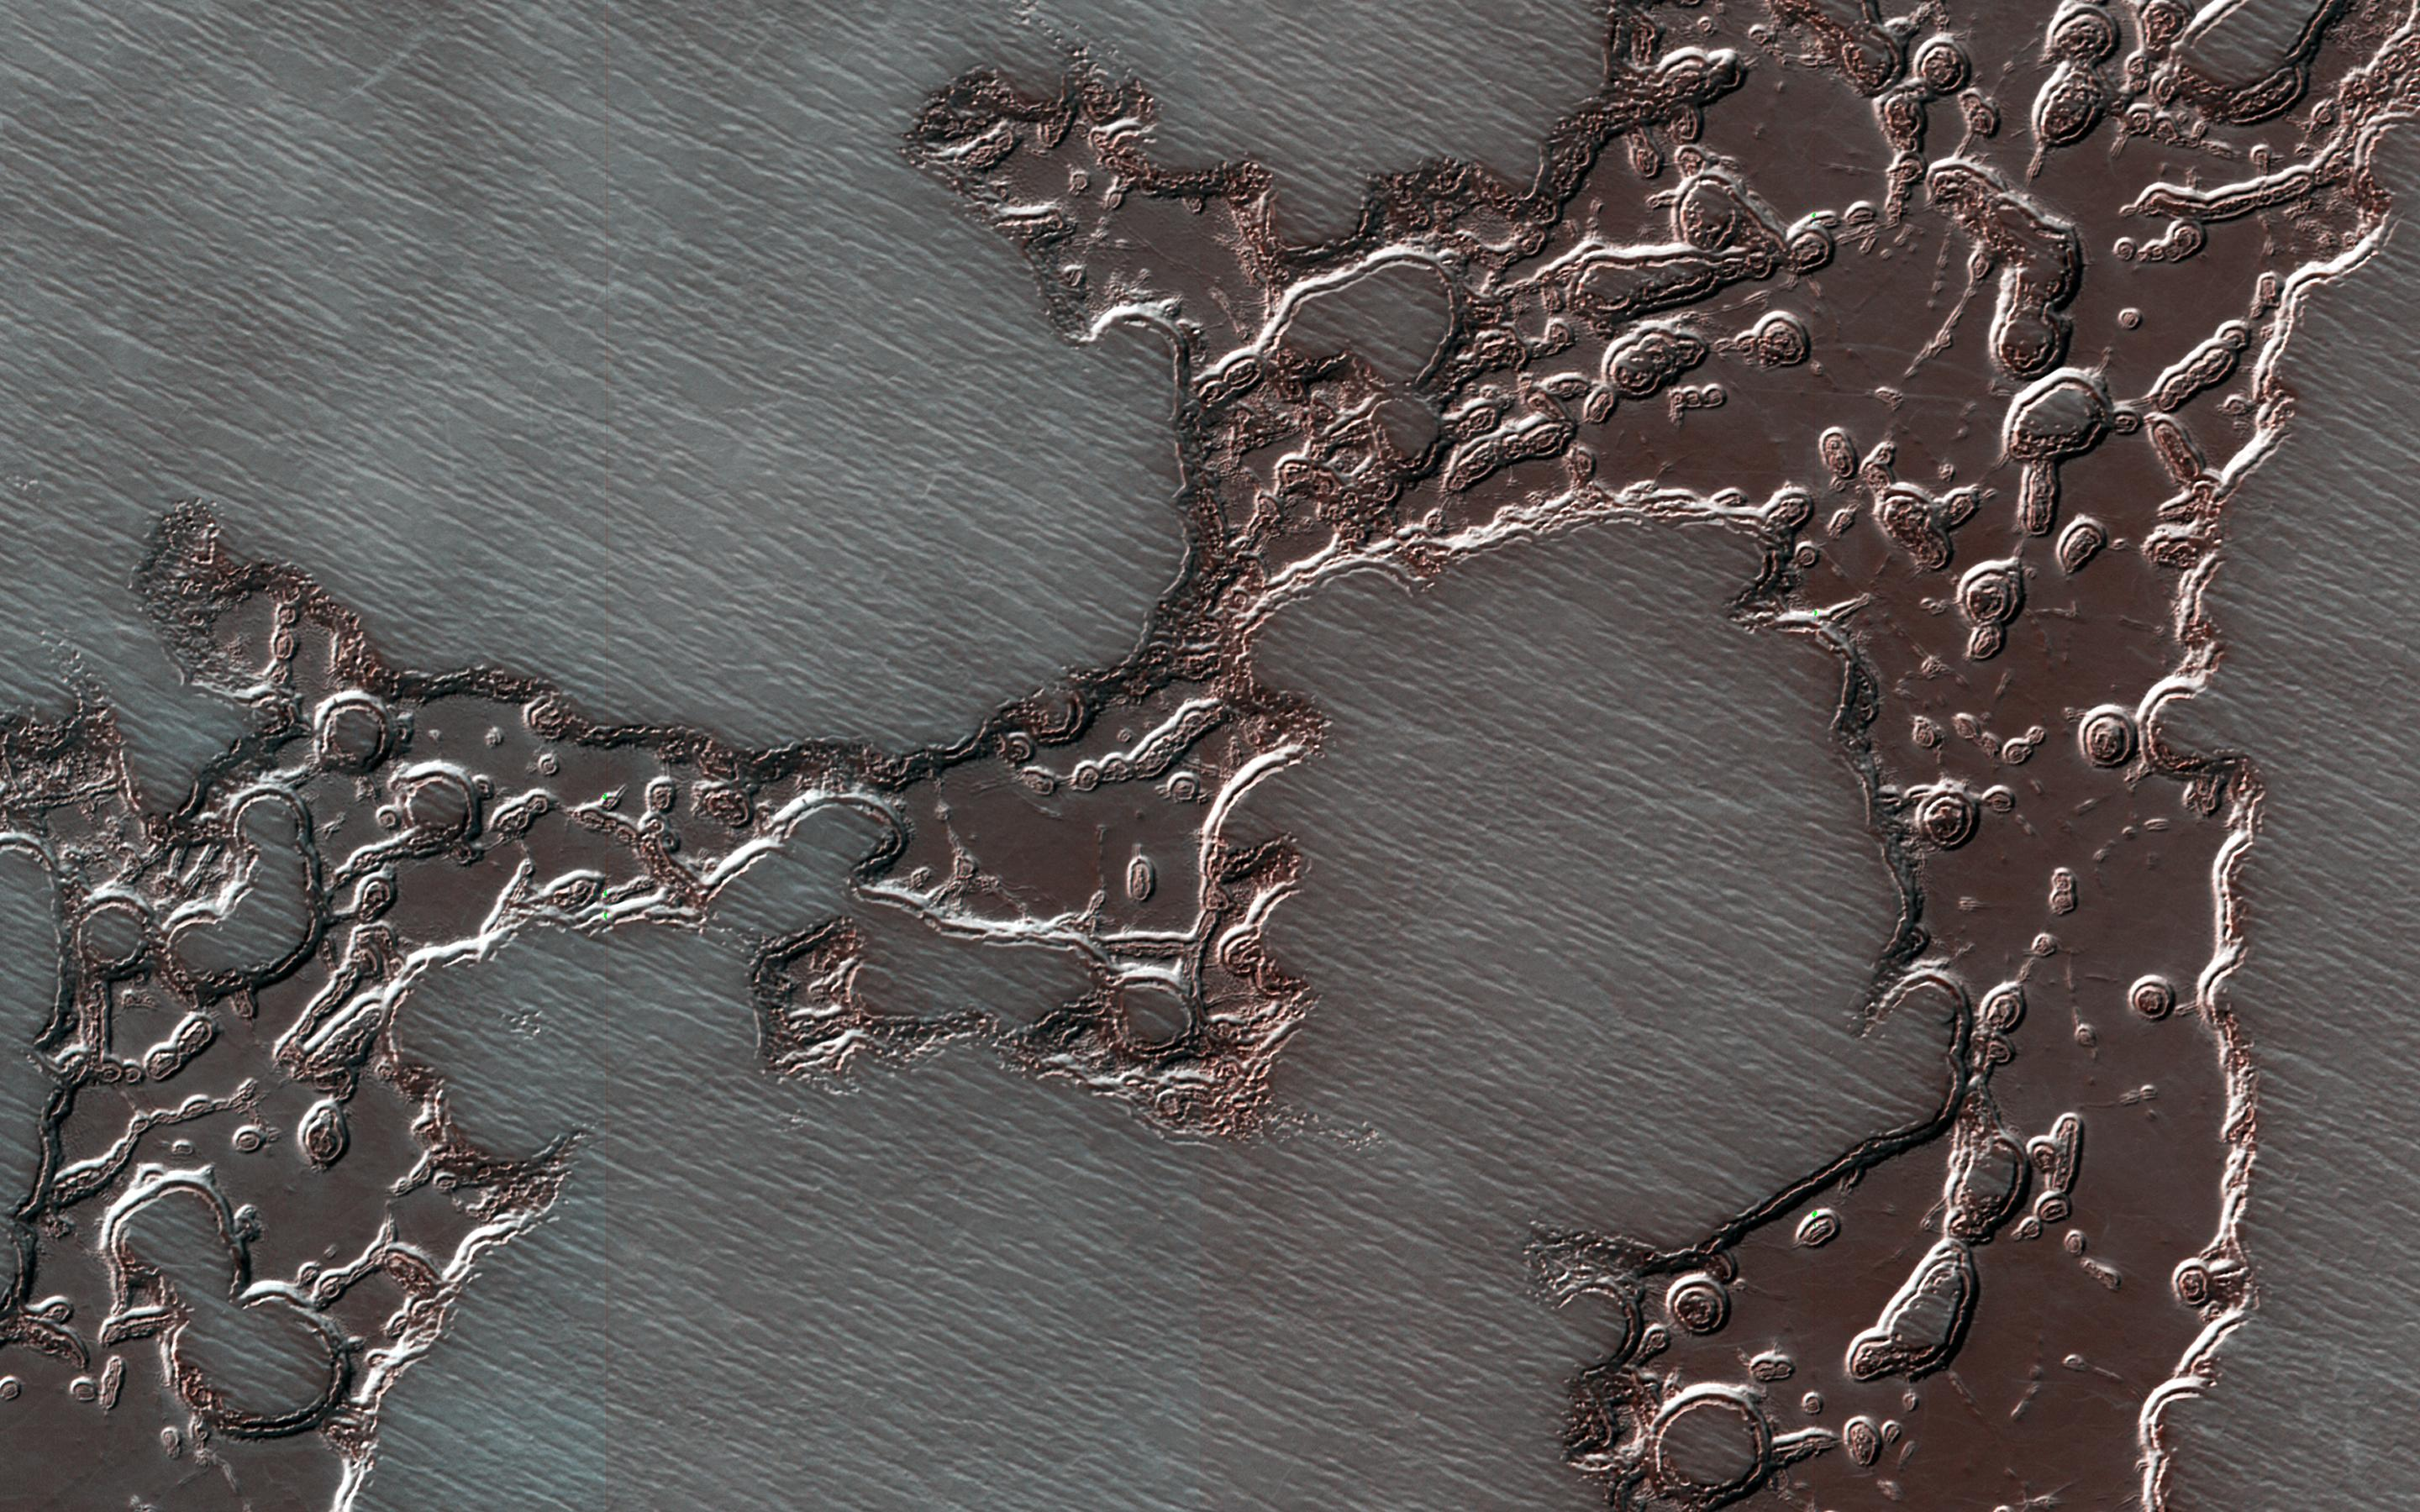 This image acquired on August 20, 2018 by NASAs Mars Reconnaissance Orbiter, shows remnants of a deposit, composed of dry ice layered together with dust and water ice, that form the south polar residual cap.